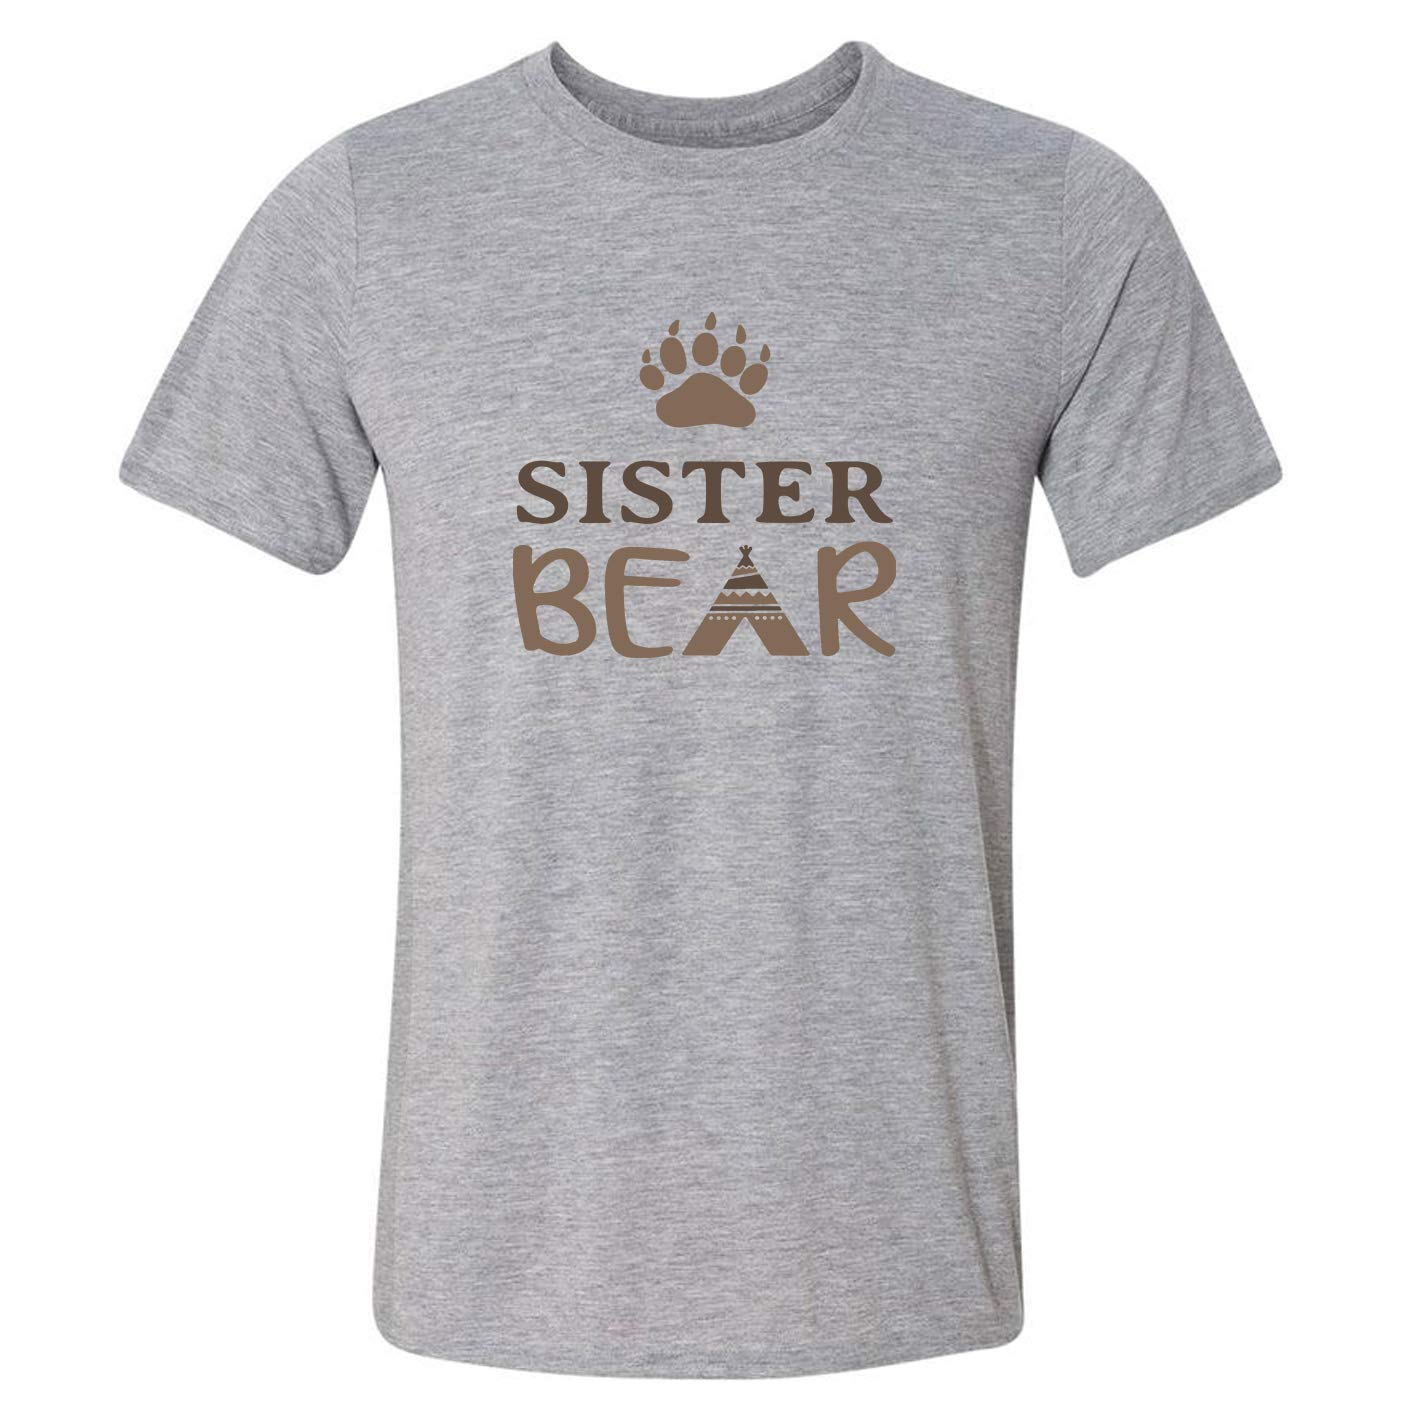 Sister Bear T-Shirt Super beauty Outlet sale feature product restock quality top